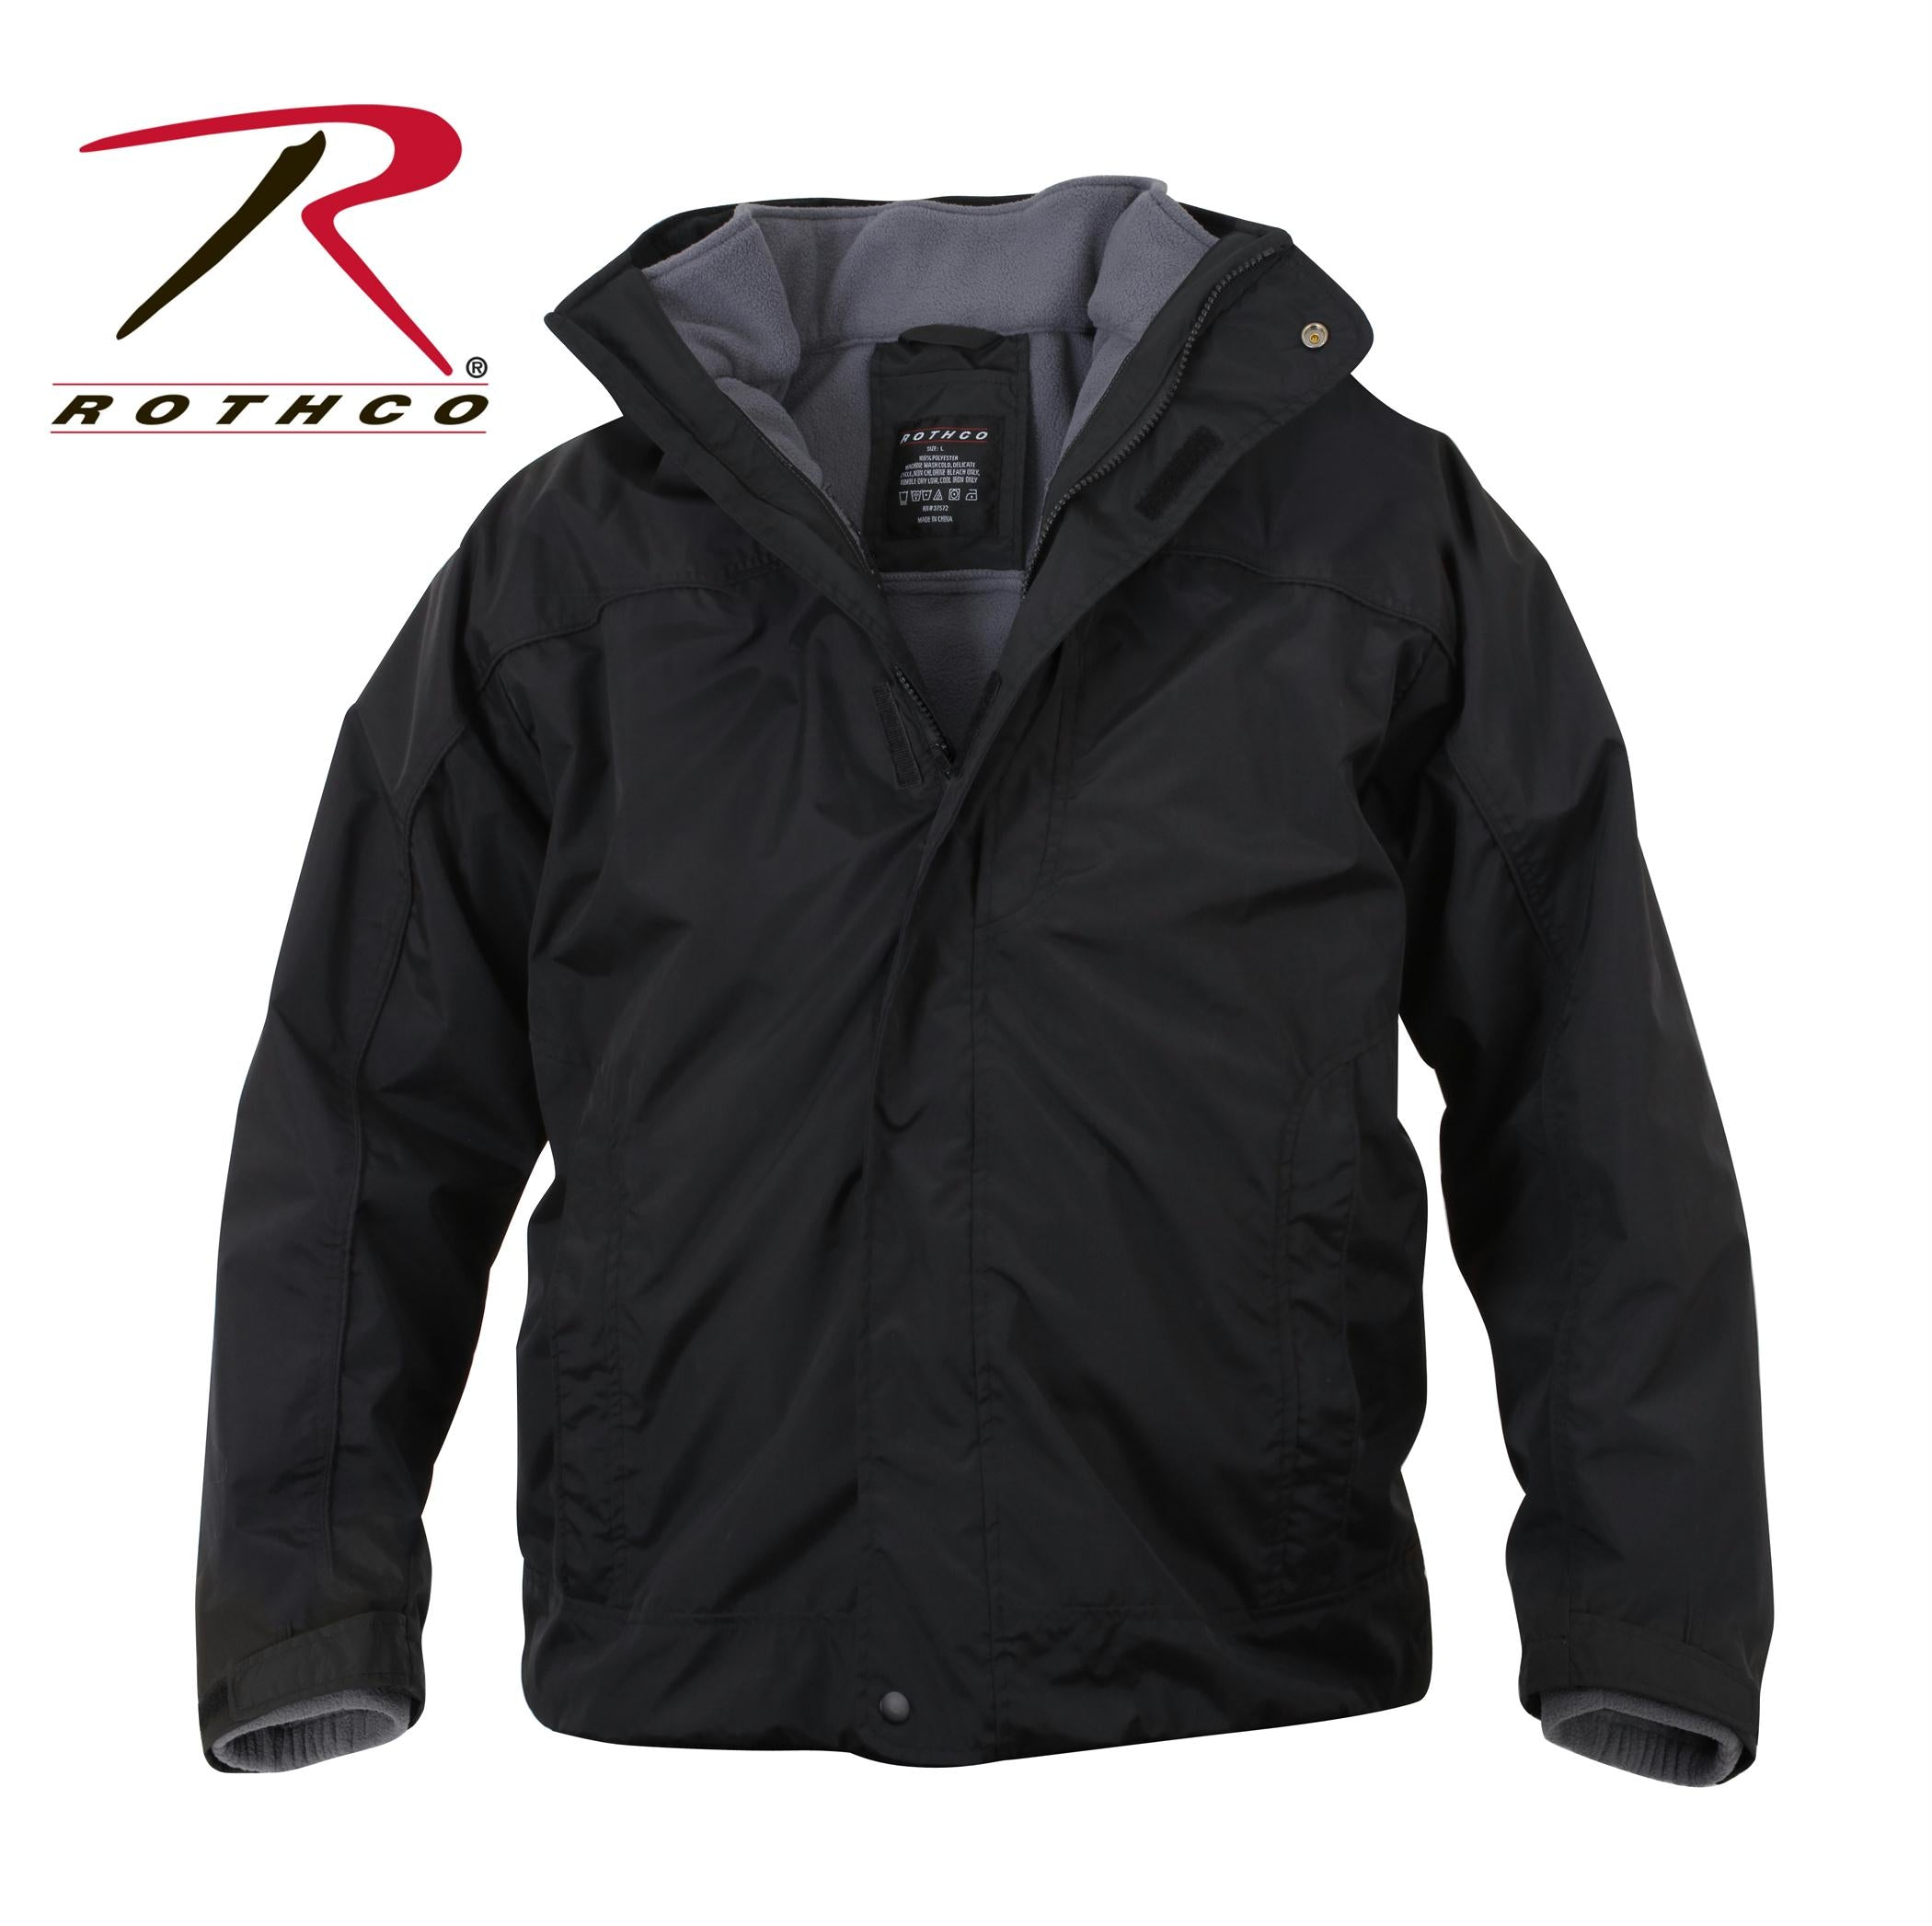 Rothco All Weather 3 In 1 Jacket - 3XL